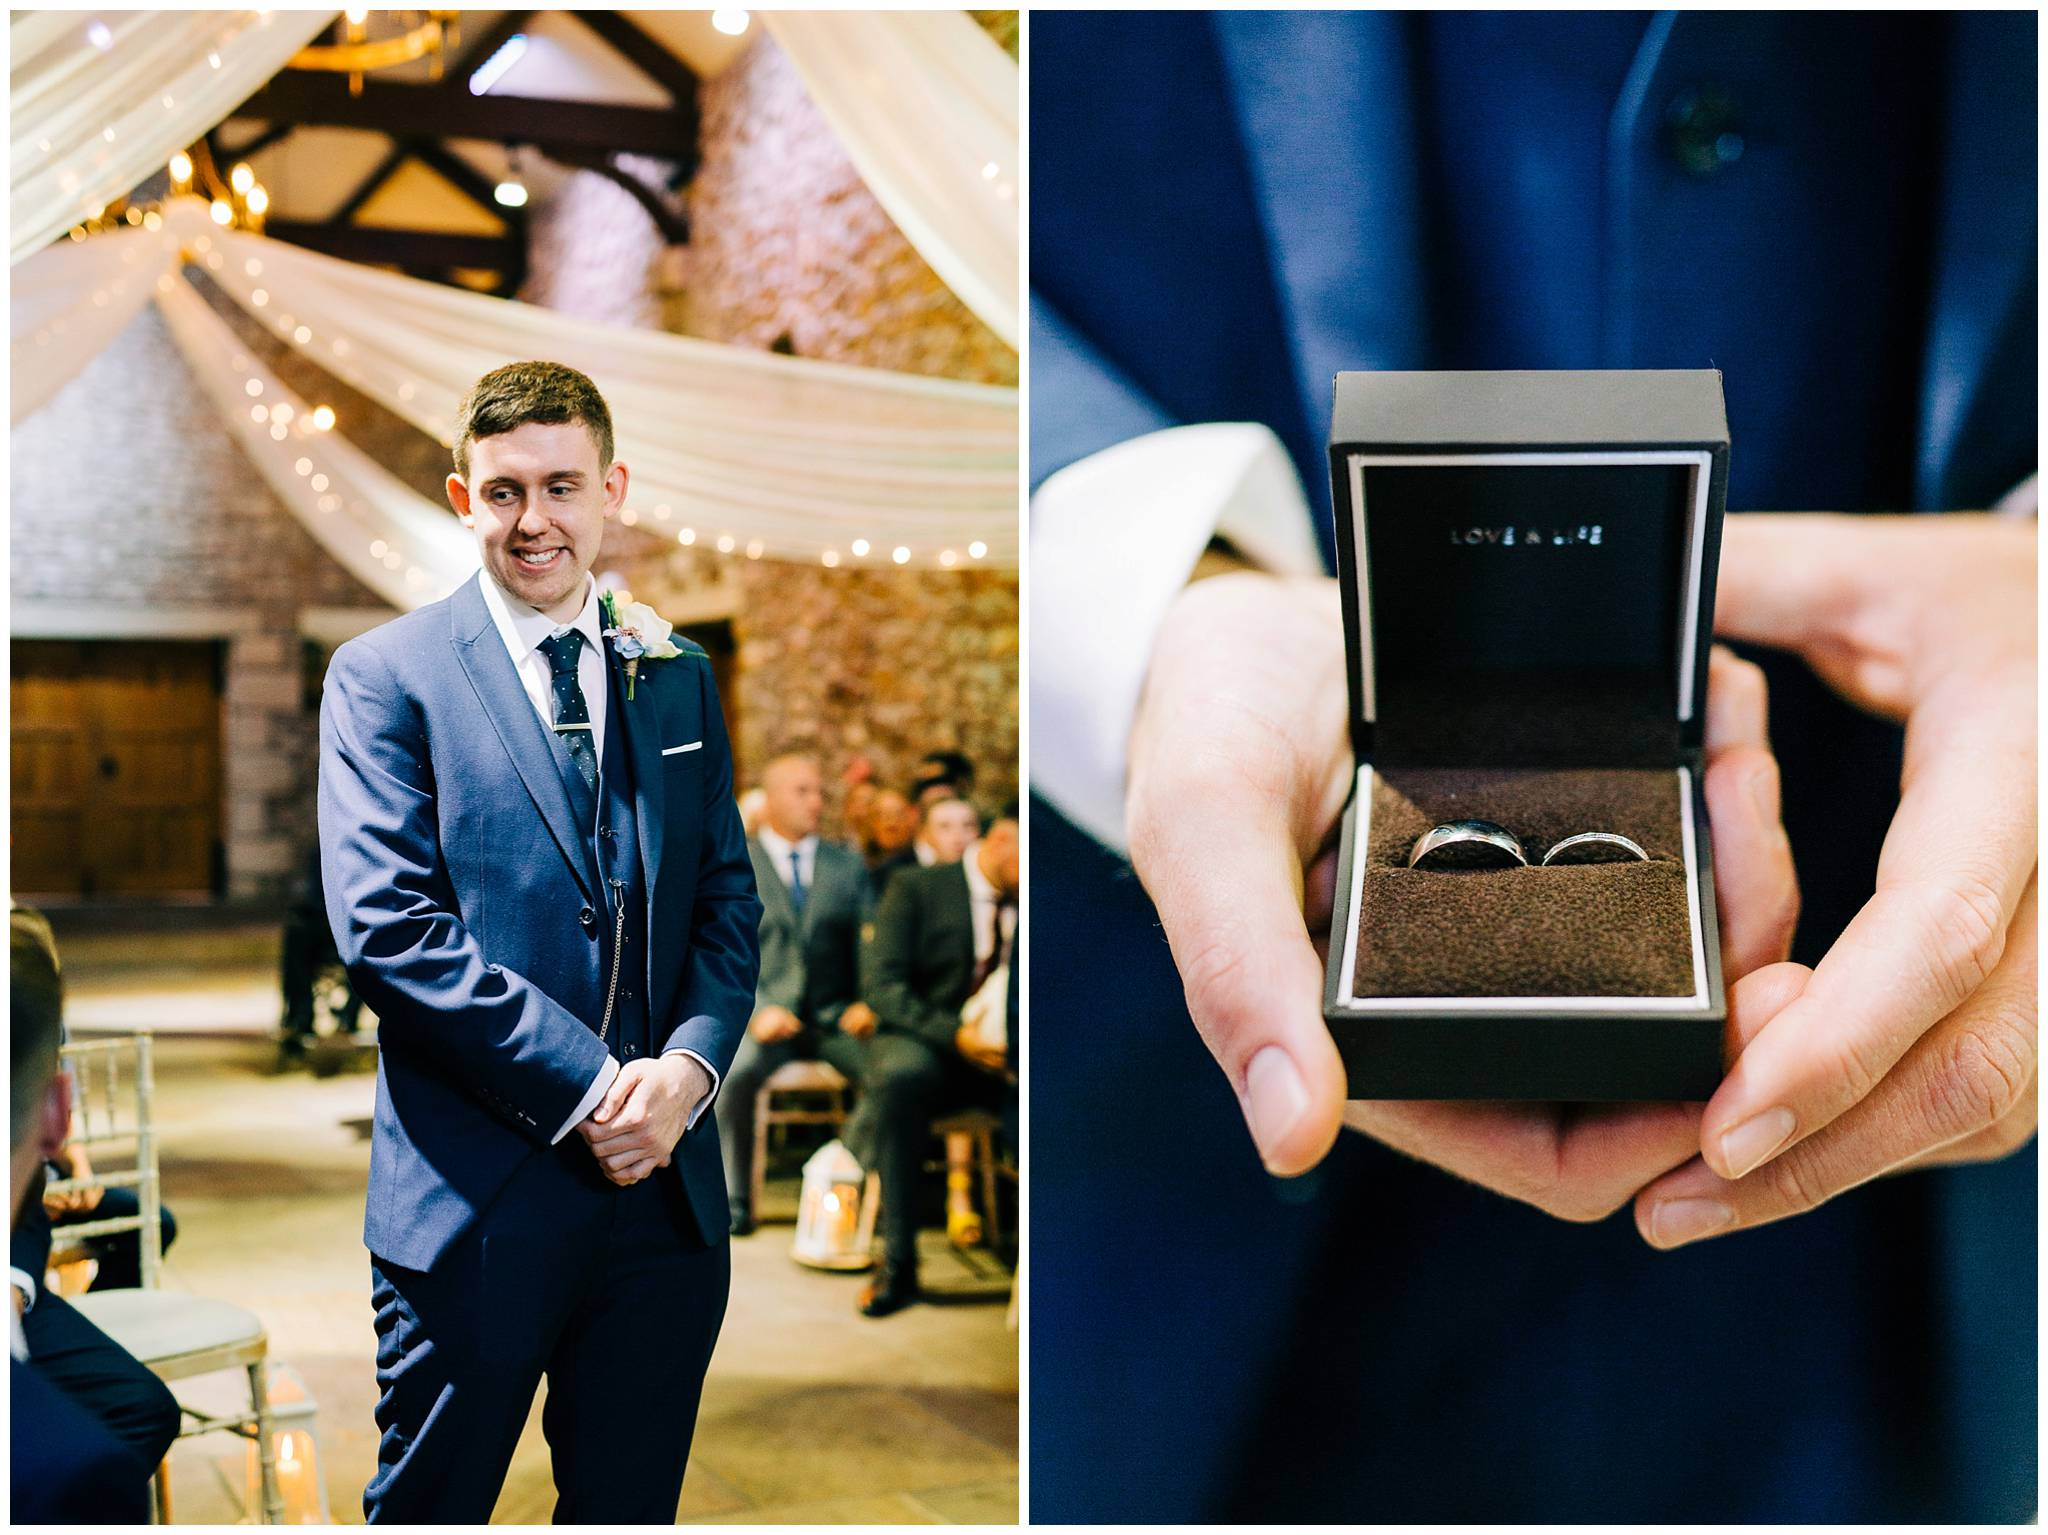 portrait of the groom stood waiting at the end of the aisle and a close up of the wedding bands